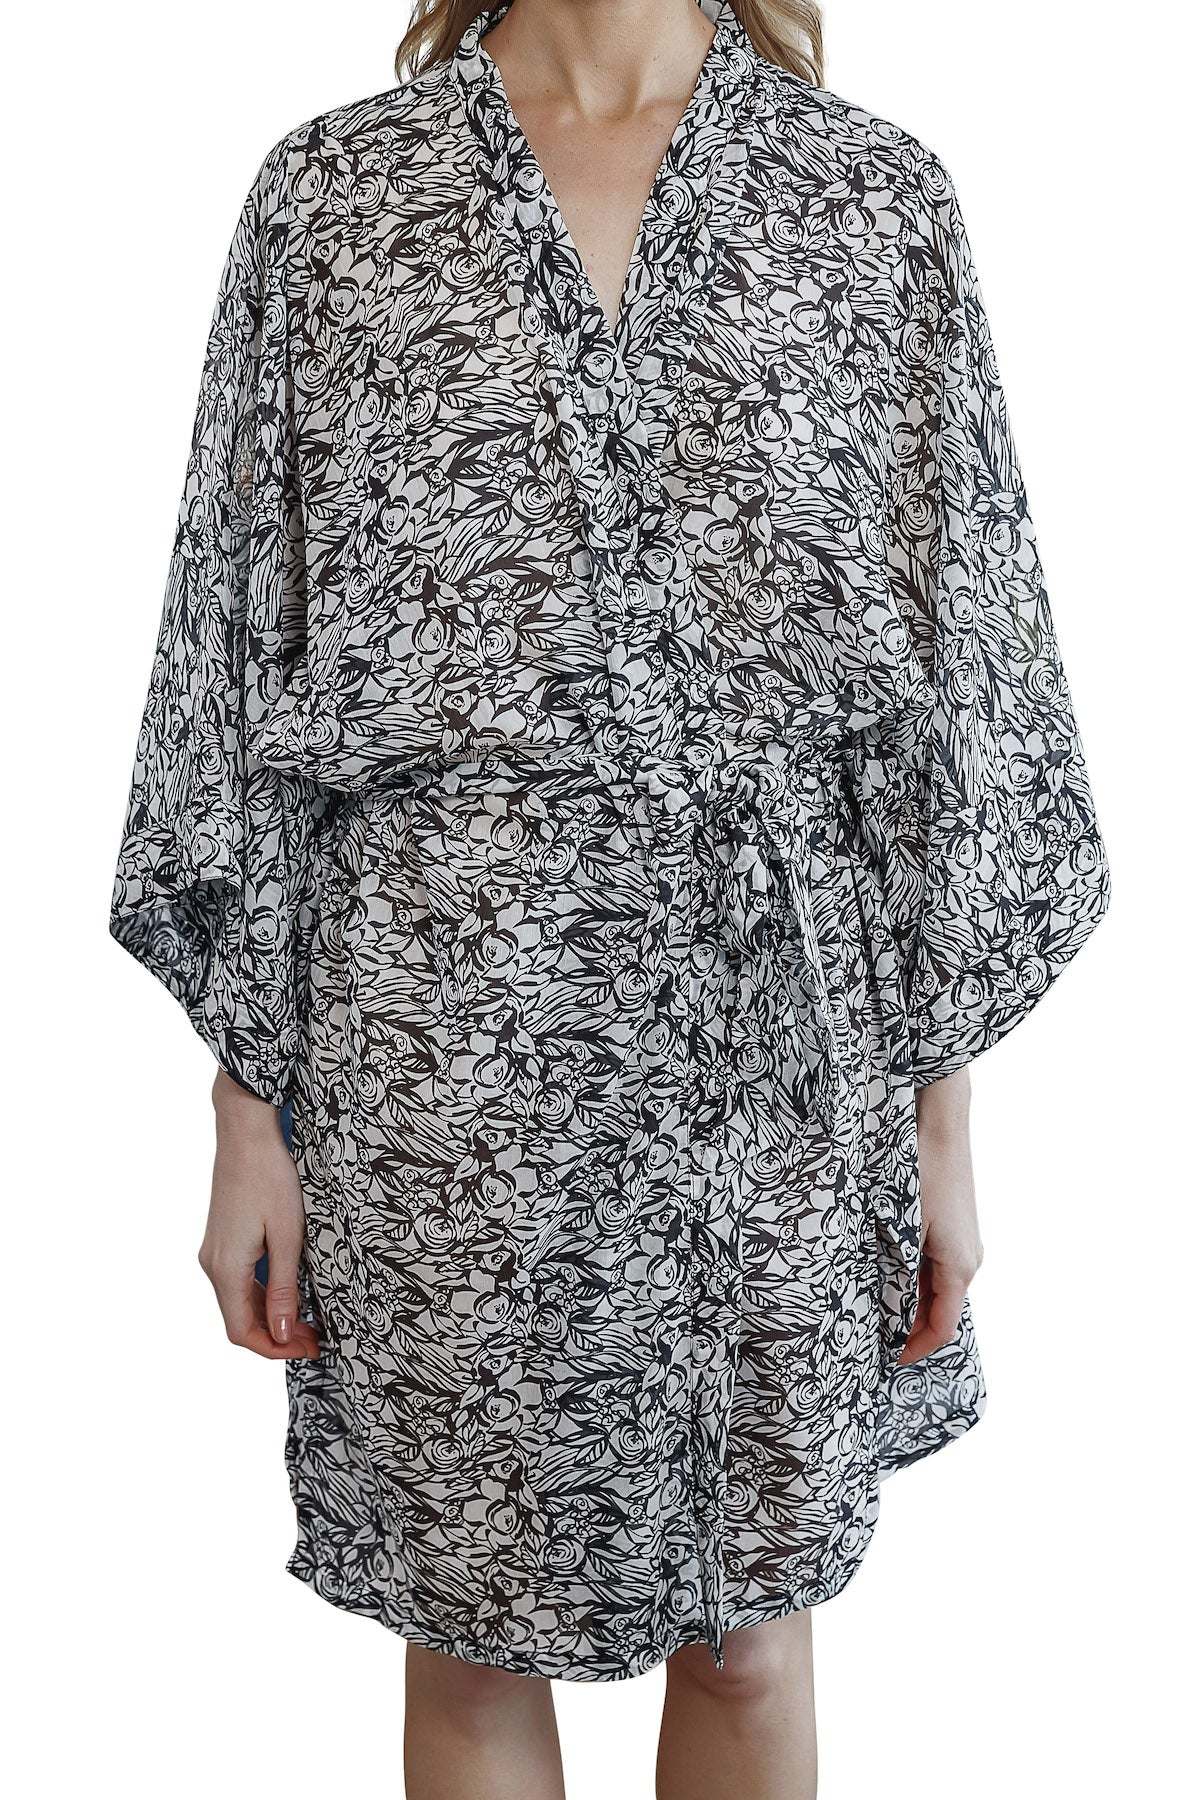 Imogen Cotton Silk Kimono Robe with black and white floral pattern and waist tie belt, front view